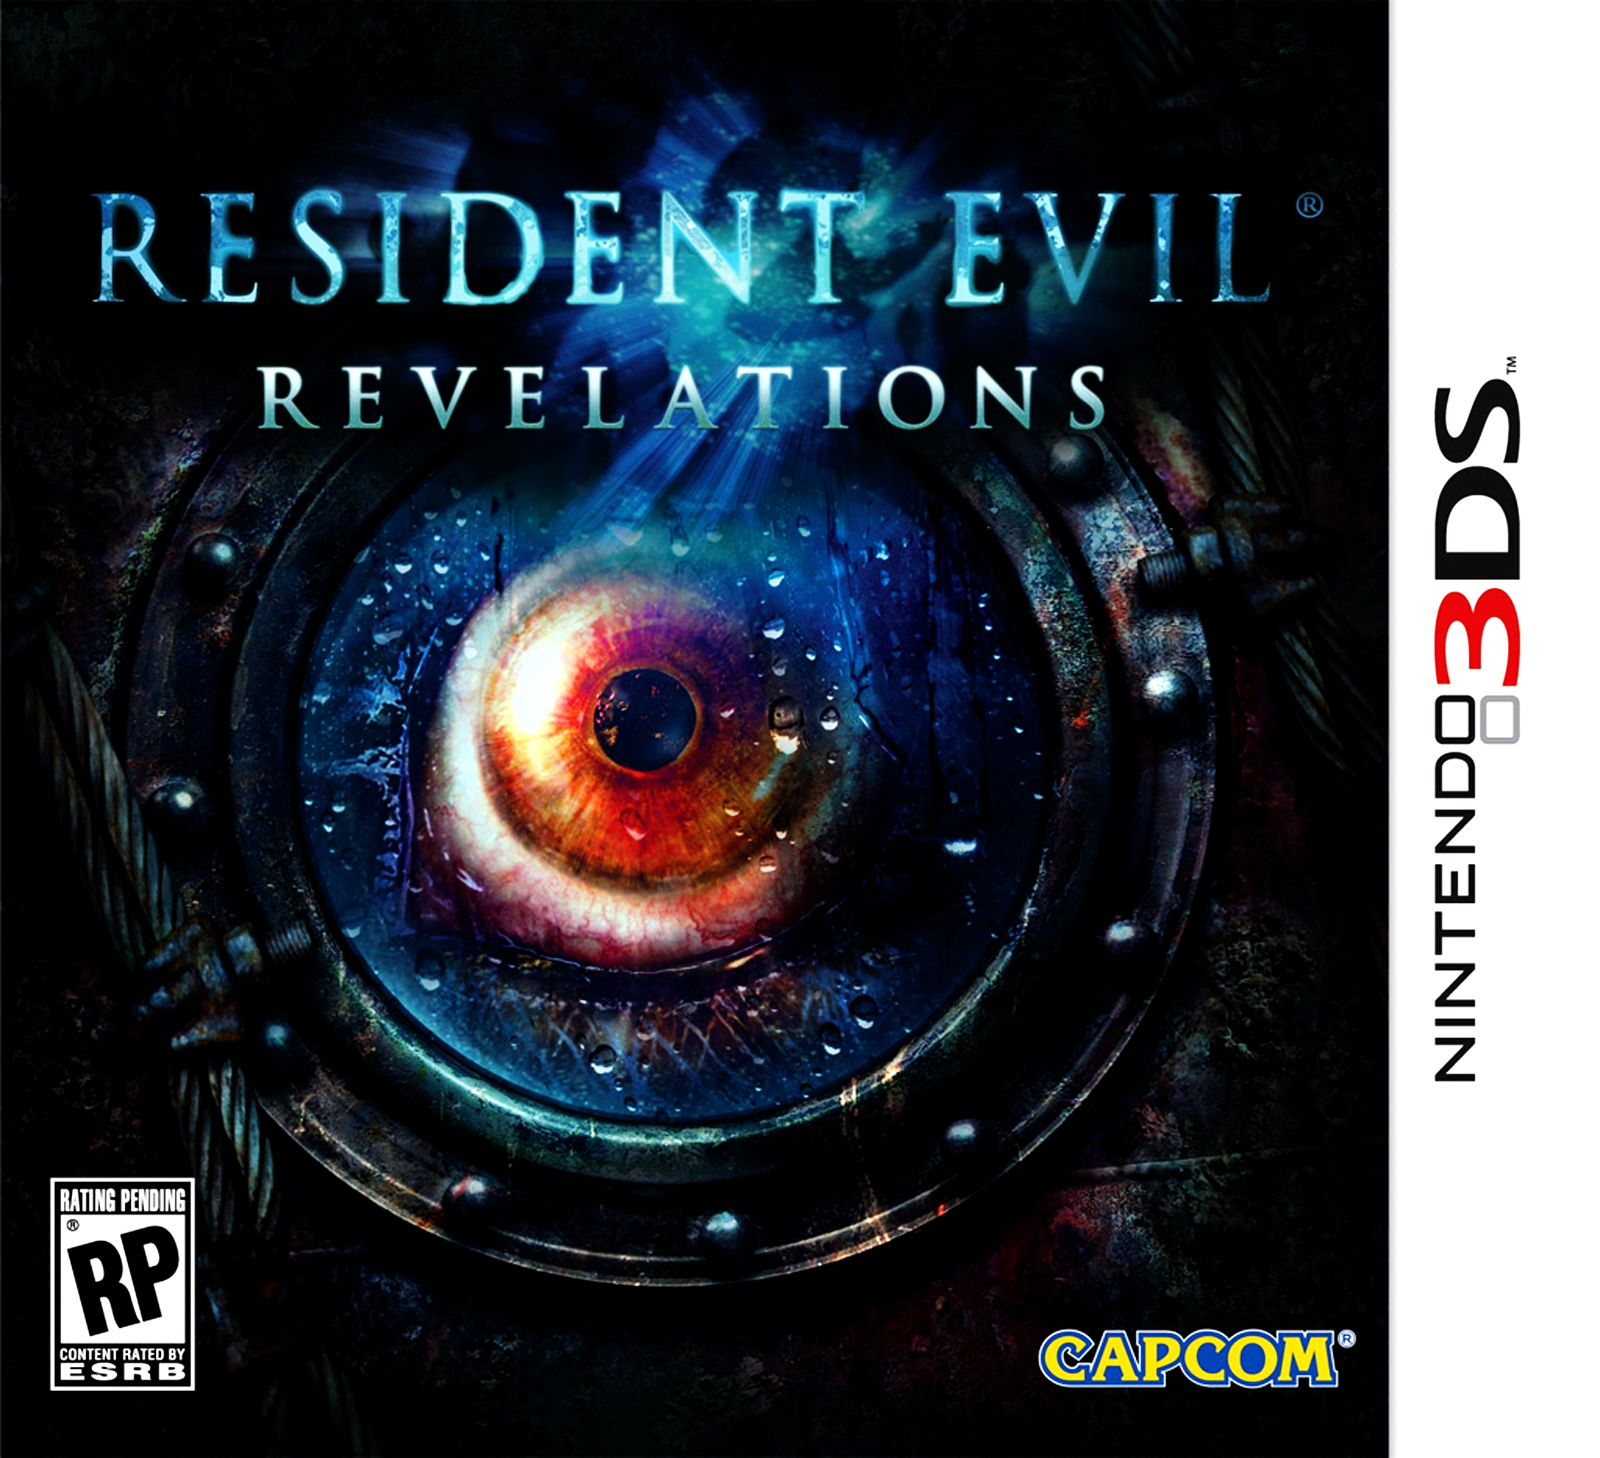 Resident Evil Hd Wallpaper: Resident Evil Revelations HD Game Wallpapers HQ Wallpapers